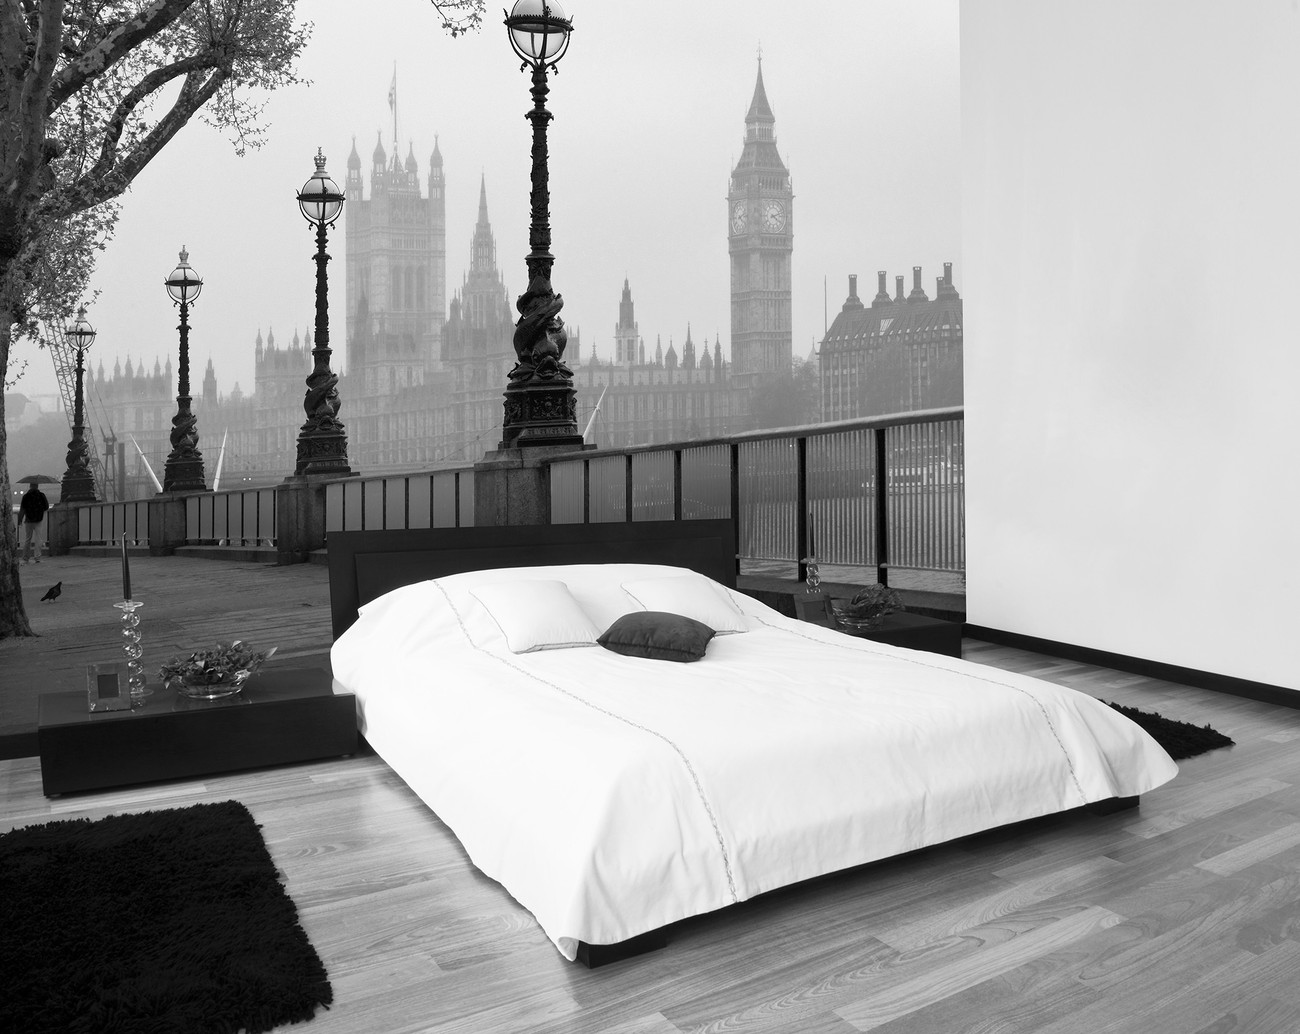 London fog wall mural buy at europosters for Murales para pared